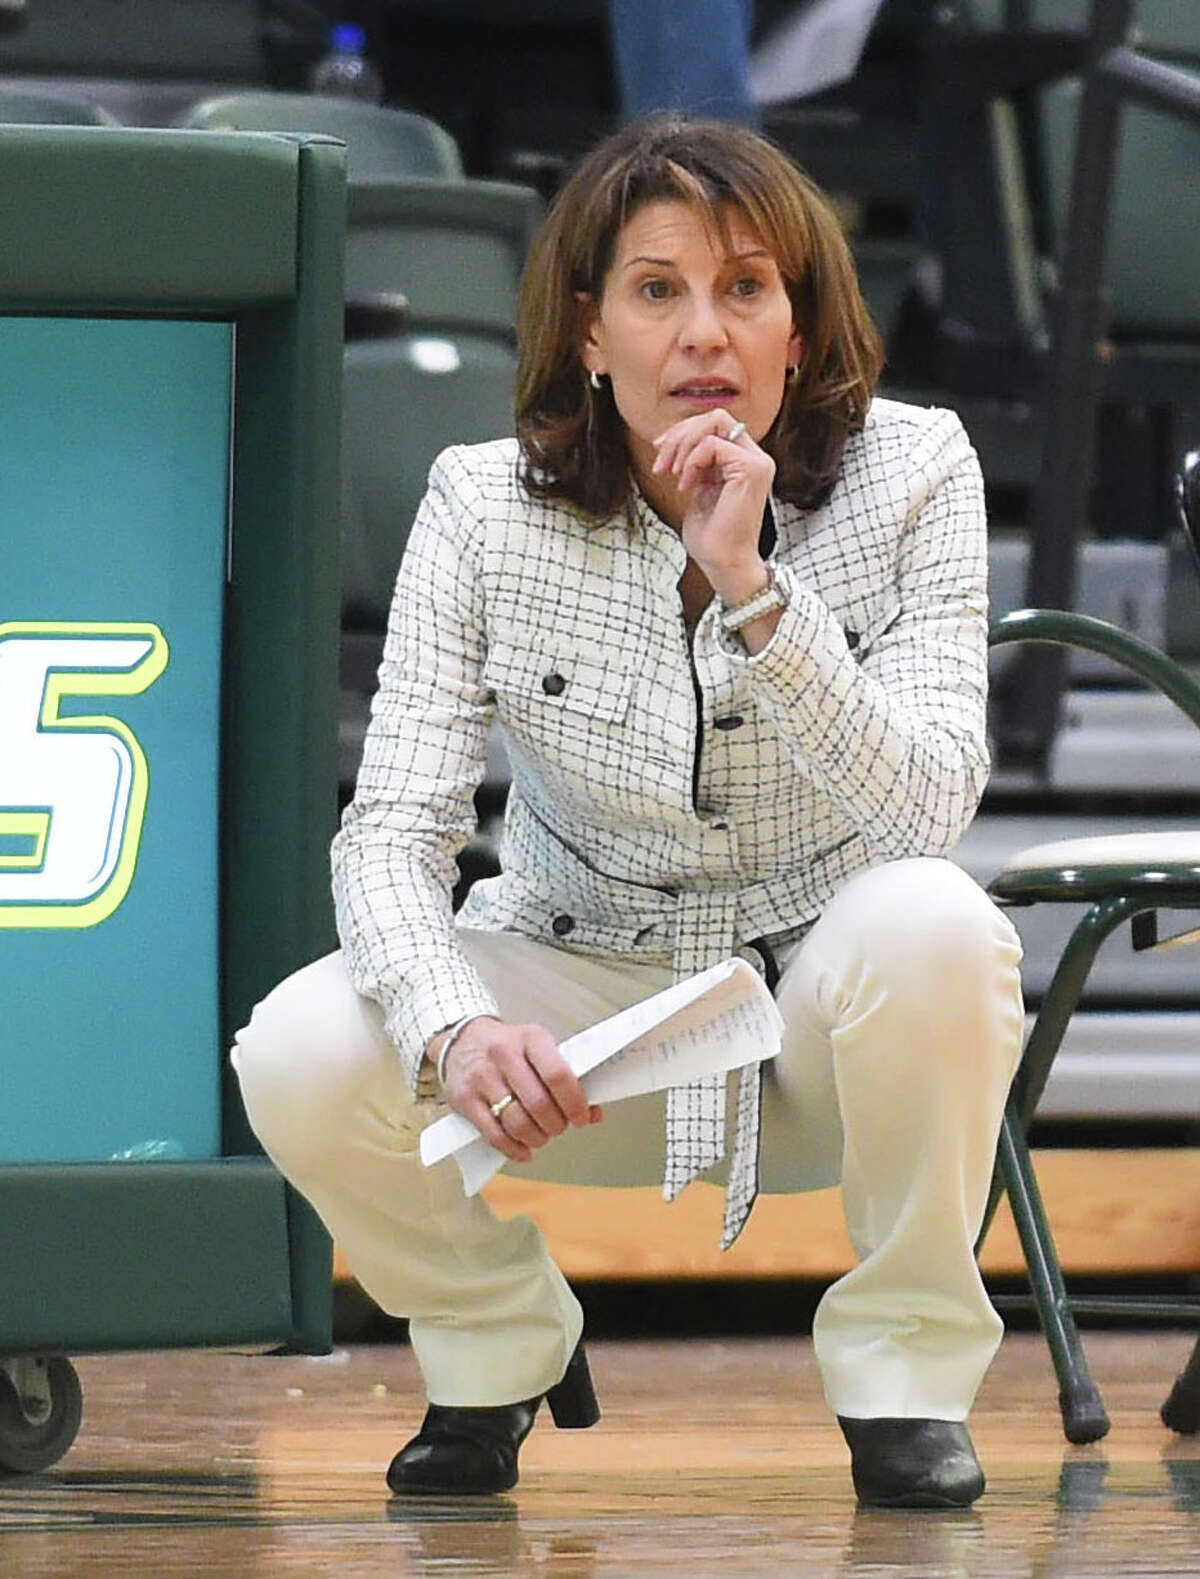 Gina Castelli will join the UAlbany women's basketball staff under head coach Colleen Mullen.In 2019, in her 6th season at Le Moyne, she relied on a trio of Capital Region players in this, her best season, at the Division II level. Her team won the Northeast-10 Conference Championship Sunday and played in the NCAA Championship starting Friday March 15, 2019.